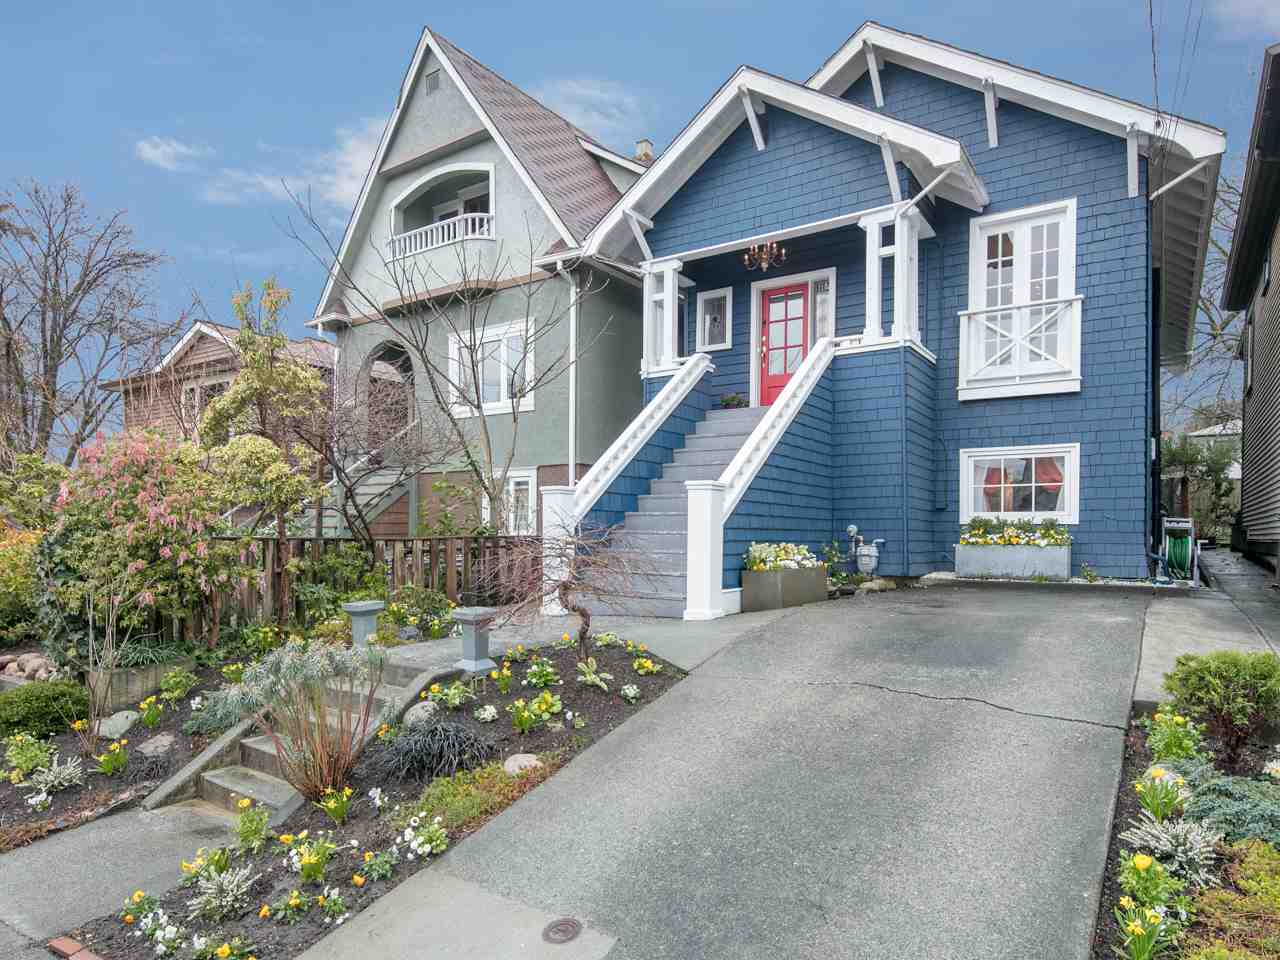 Main Photo: 1112 ROSE Street in Vancouver: Grandview VE House for sale (Vancouver East)  : MLS® # R2149737